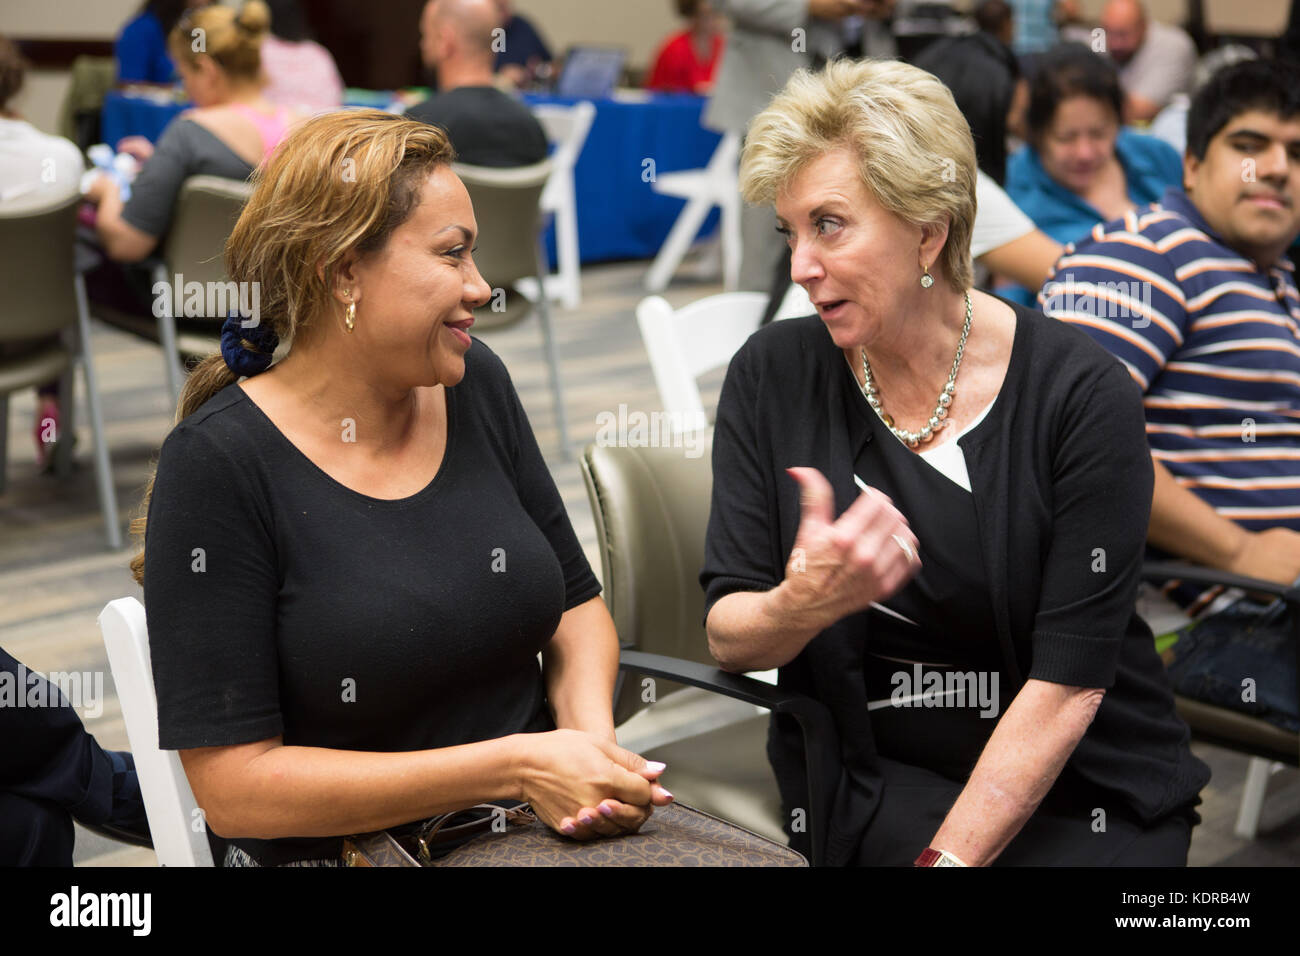 U.S. Small Business Administration Administrator Linda McMahon (right) speaks to a Florida resident in the aftermath - Stock Image